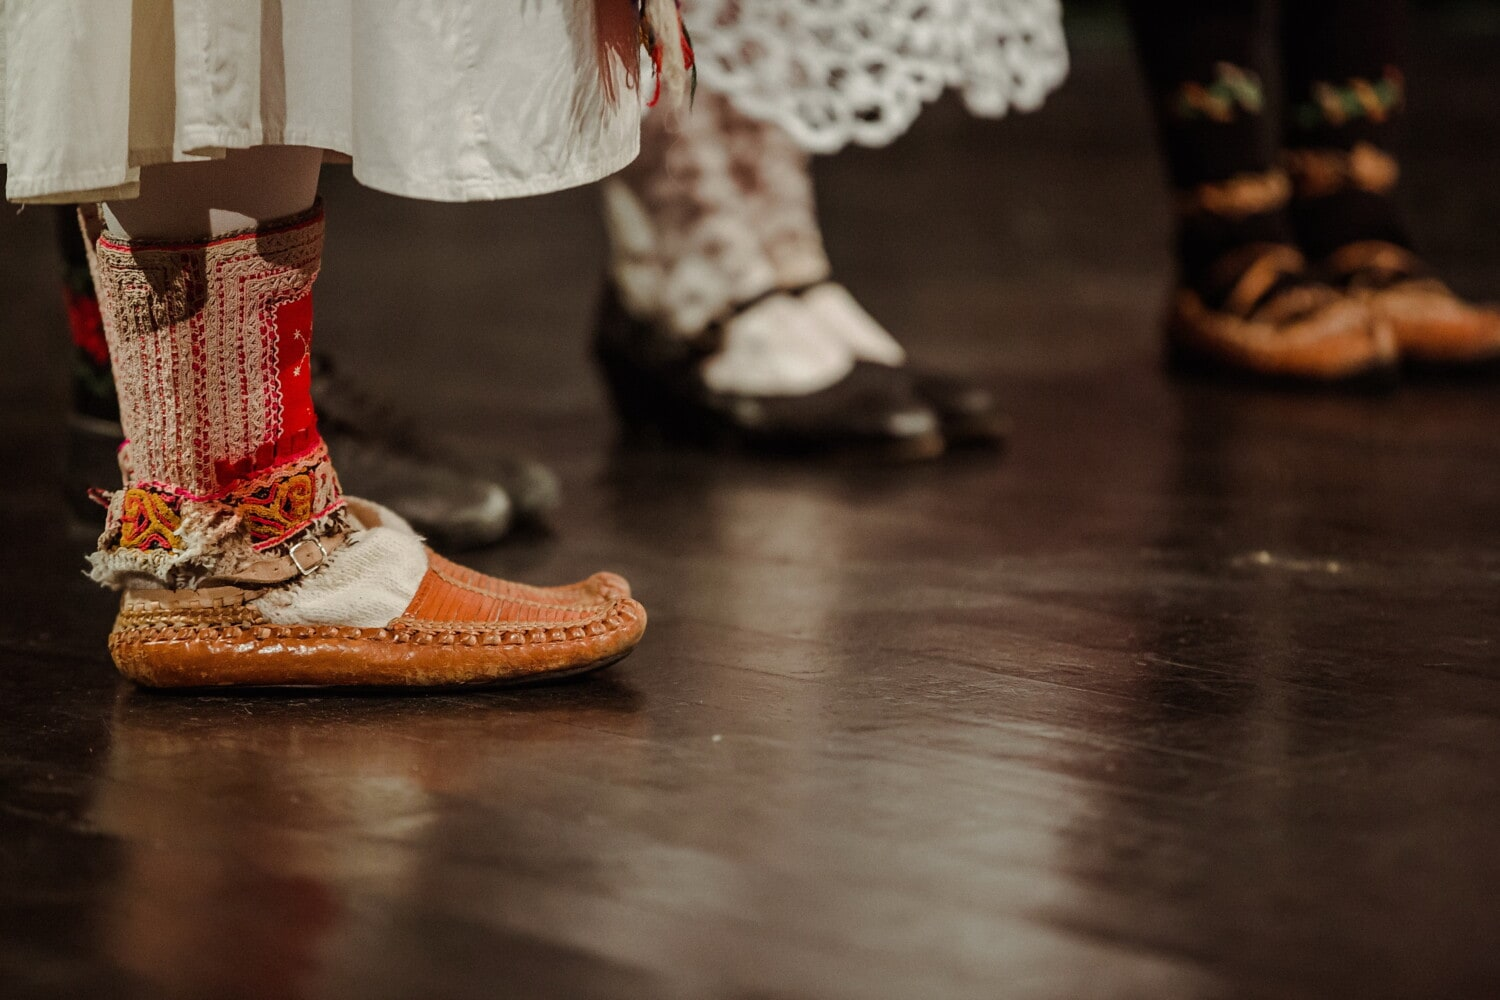 chaussures, en cuir, Outfit, traditionnel, chaussettes, danse, populaire, mode, chaussures, pied